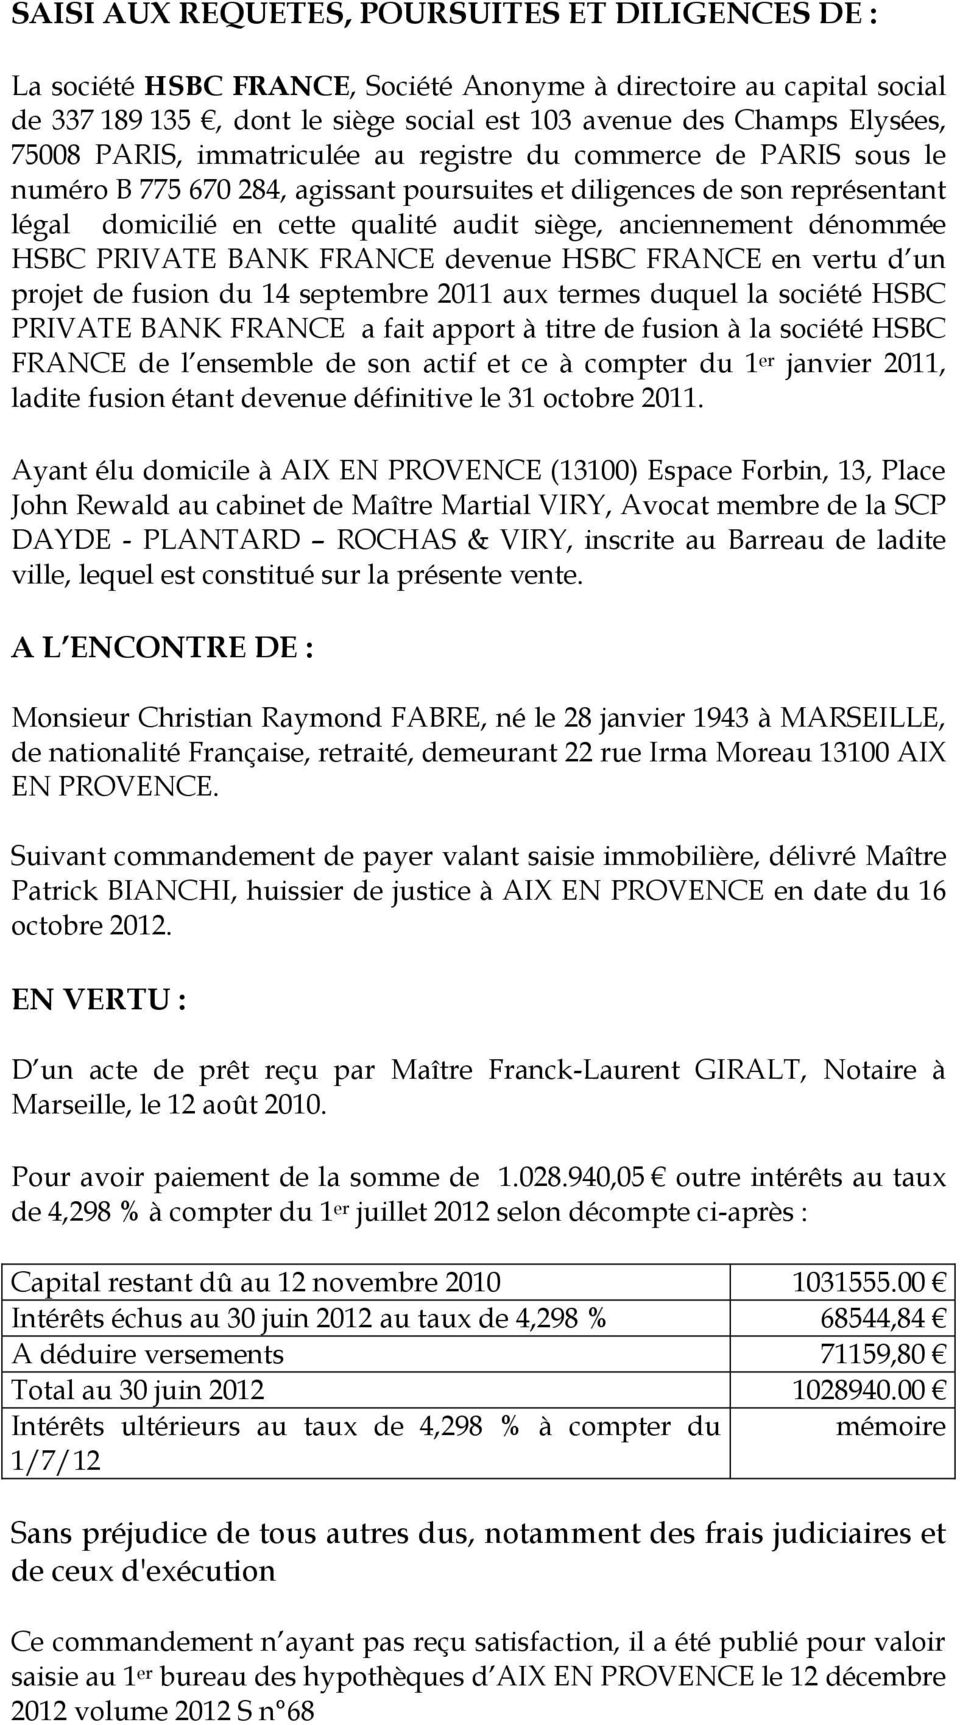 dénommée HSBC PRIVATE BANK FRANCE devenue HSBC FRANCE en vertu d un projet de fusion du 14 septembre 2011 aux termes duquel la société HSBC PRIVATE BANK FRANCE a fait apport à titre de fusion à la